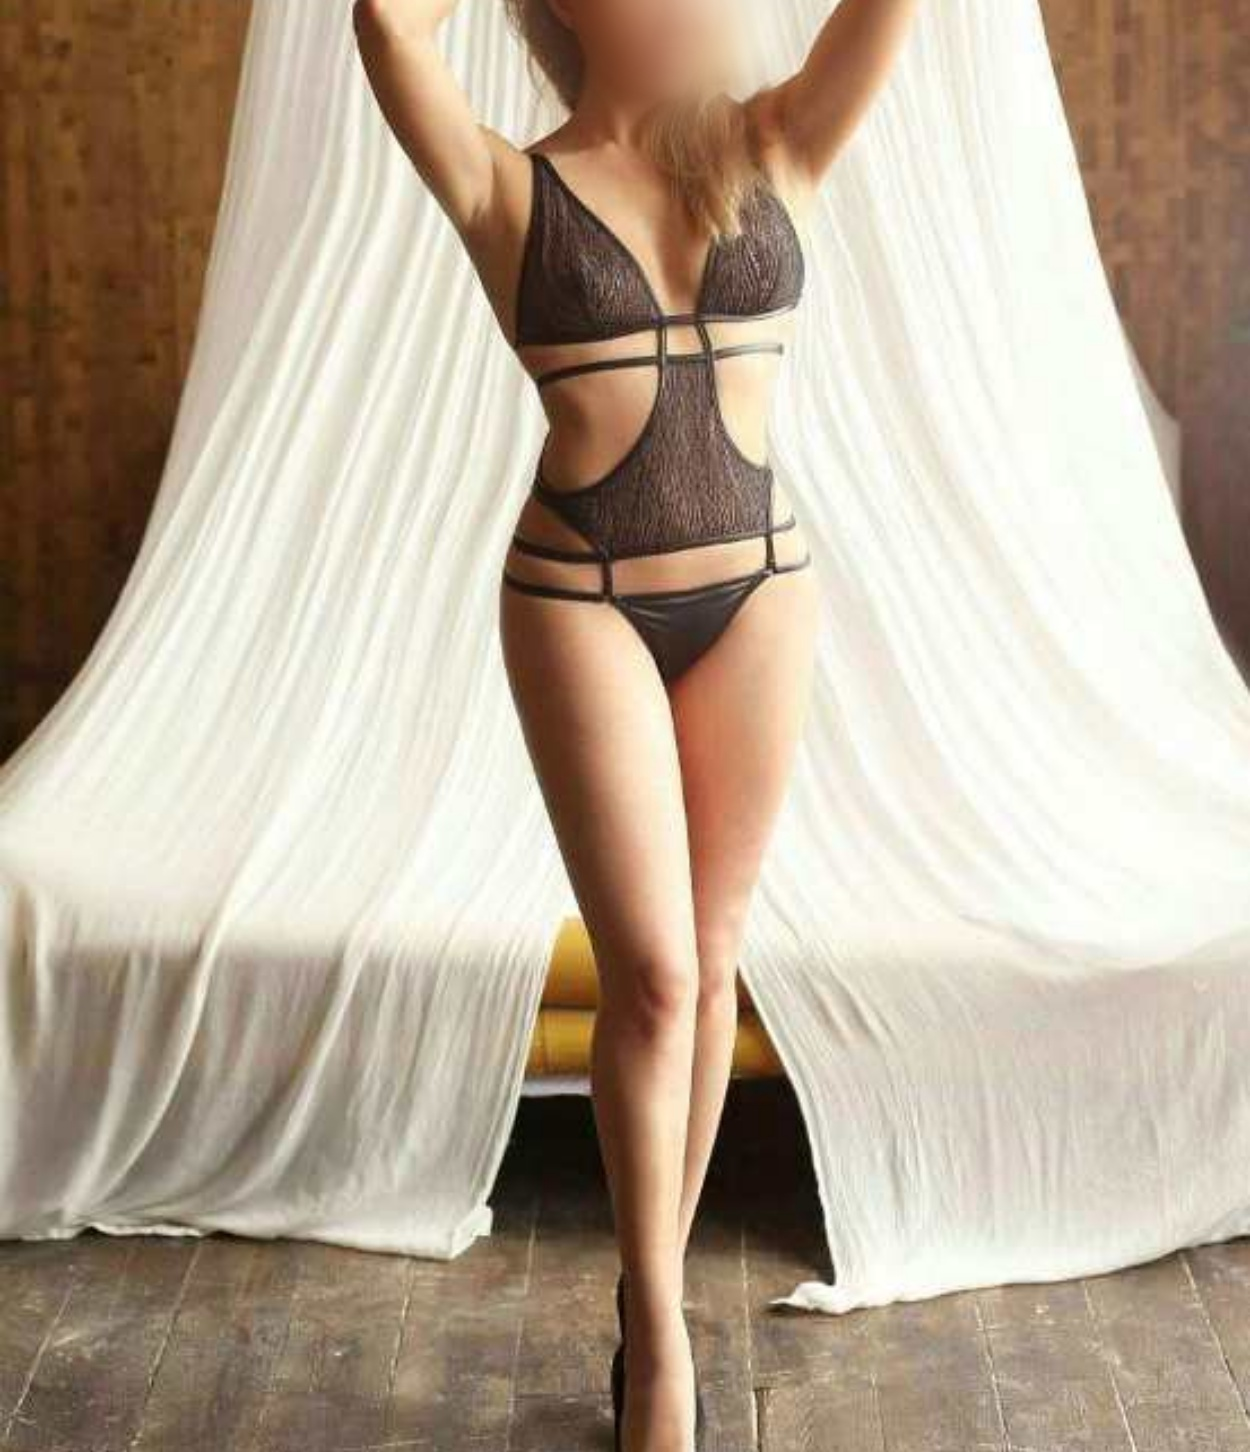 handsome escorts inner west sydney